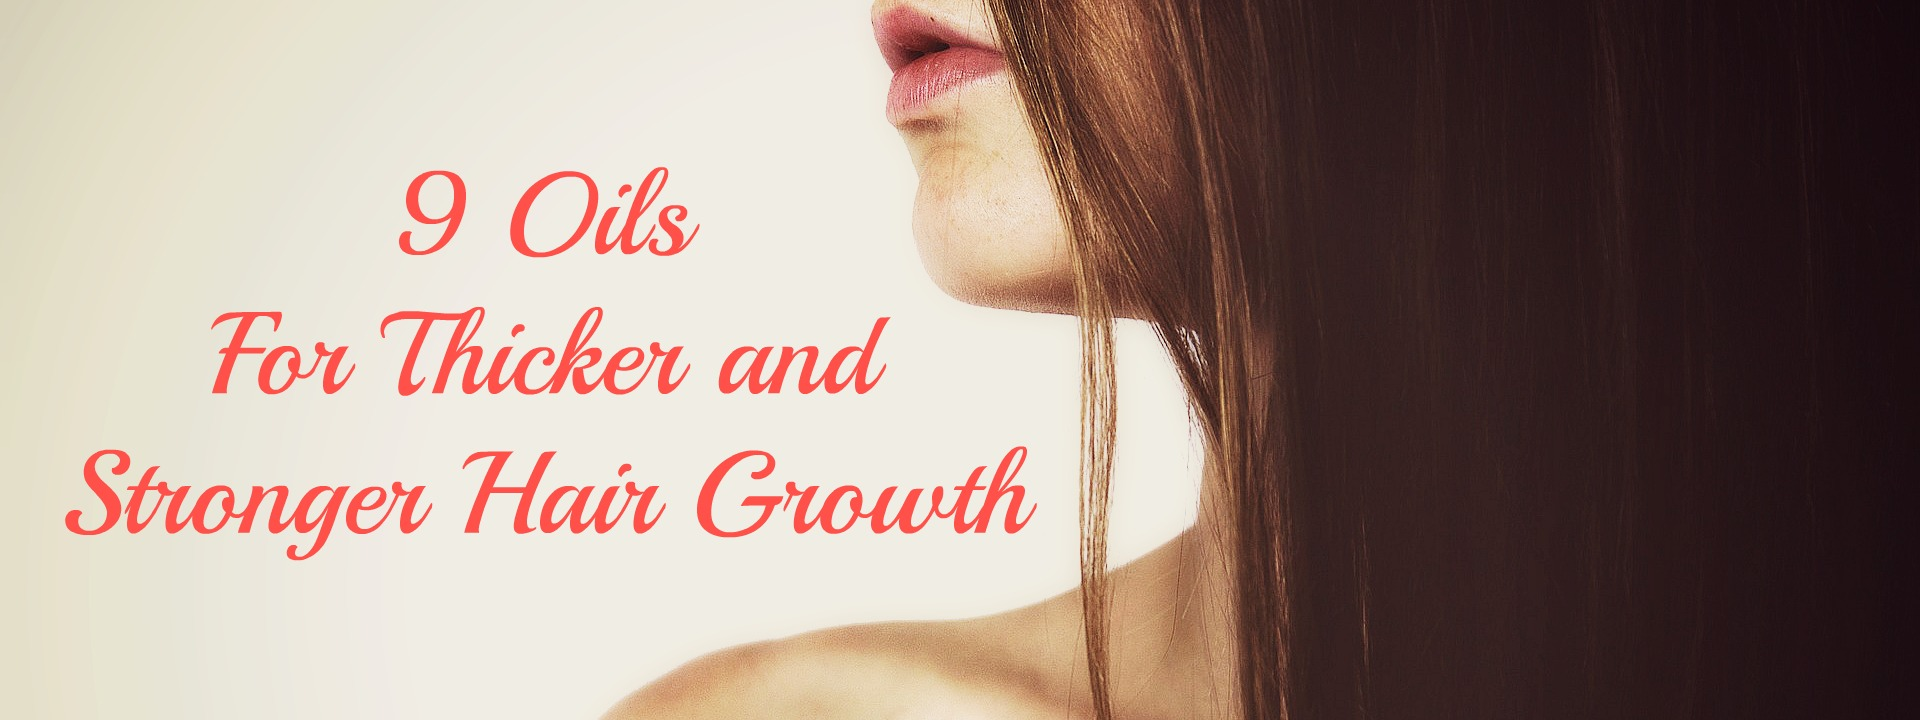 9oils for thicker hair growth